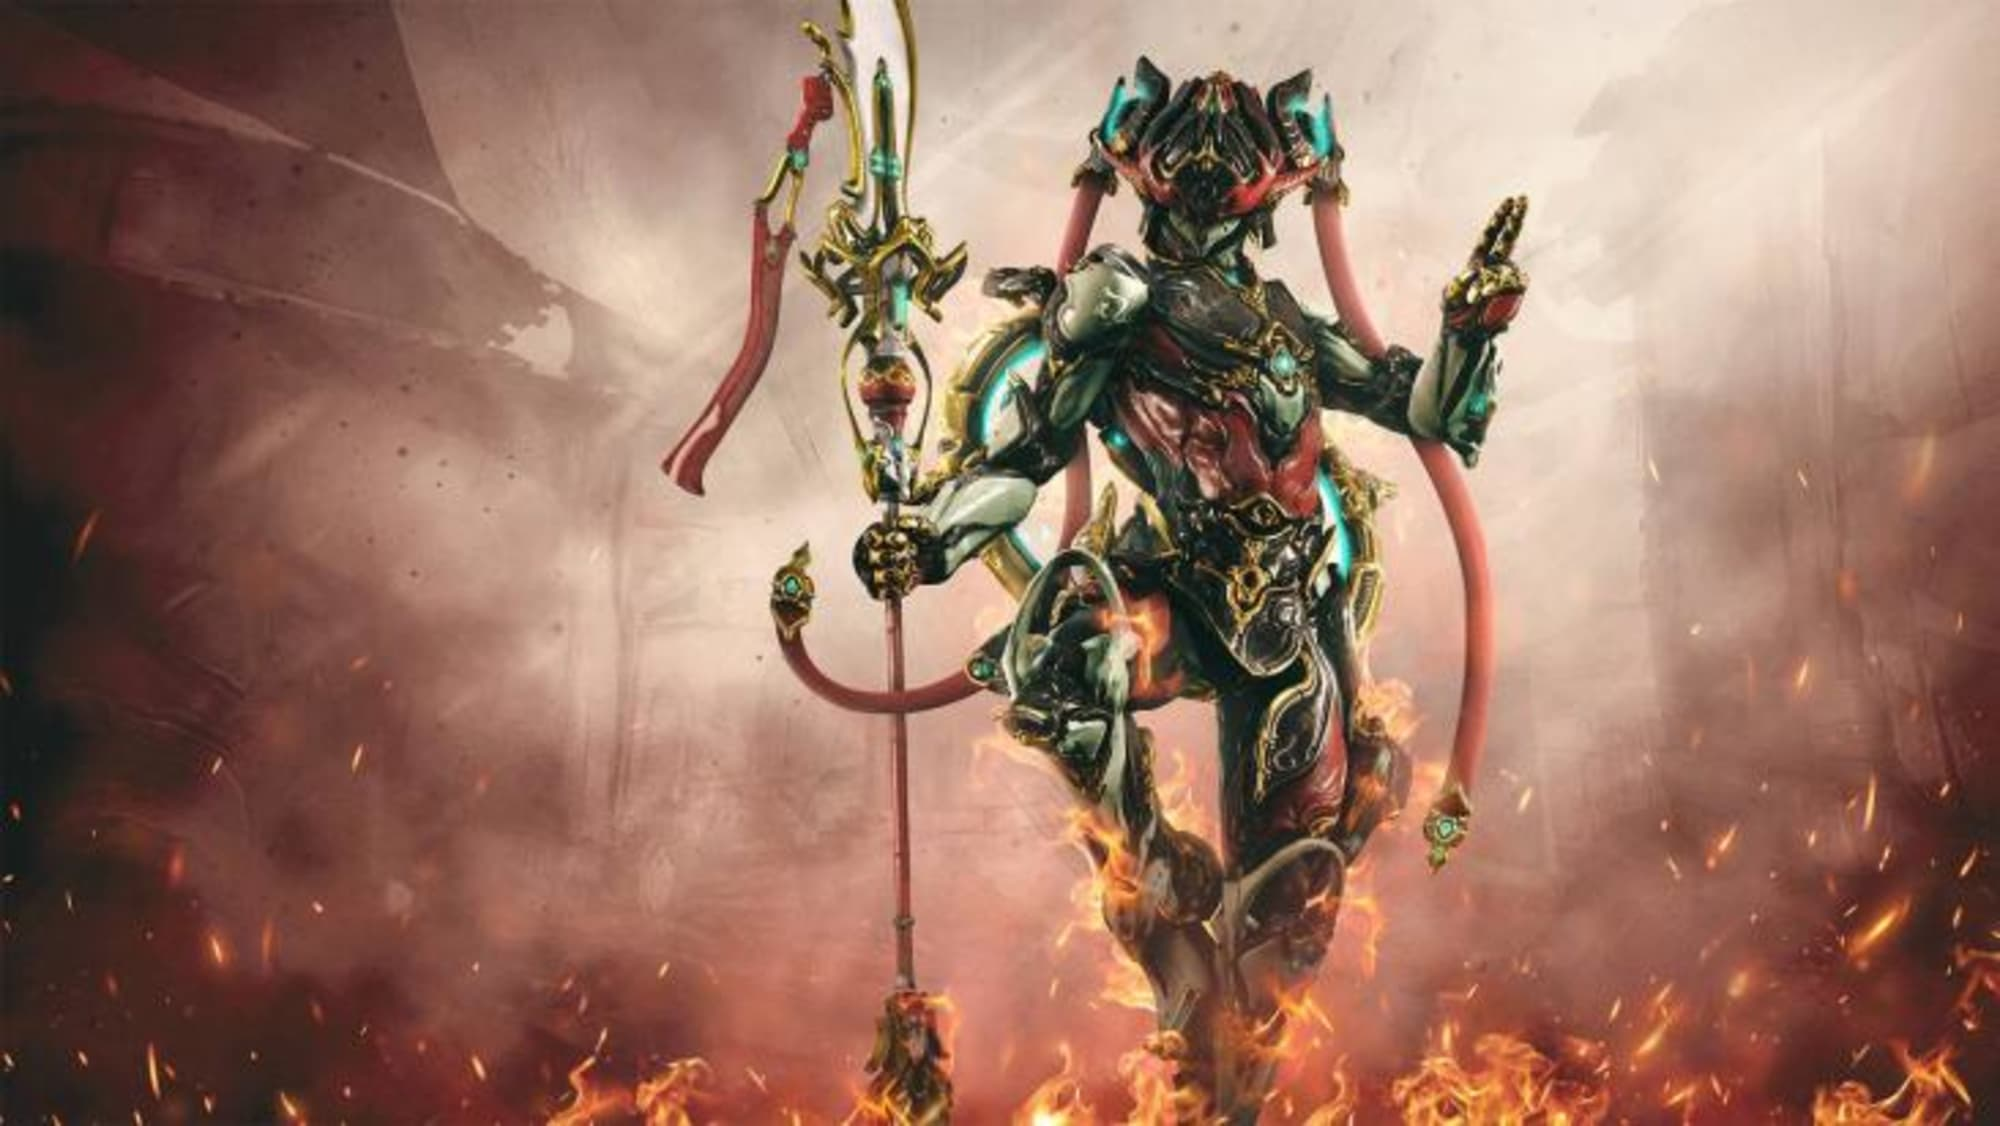 Warframe Guide How To Farm For And Build Nezha Prime It pops up in alerts occasionally so you can get a few that way if you see them. how to farm for and build nezha prime